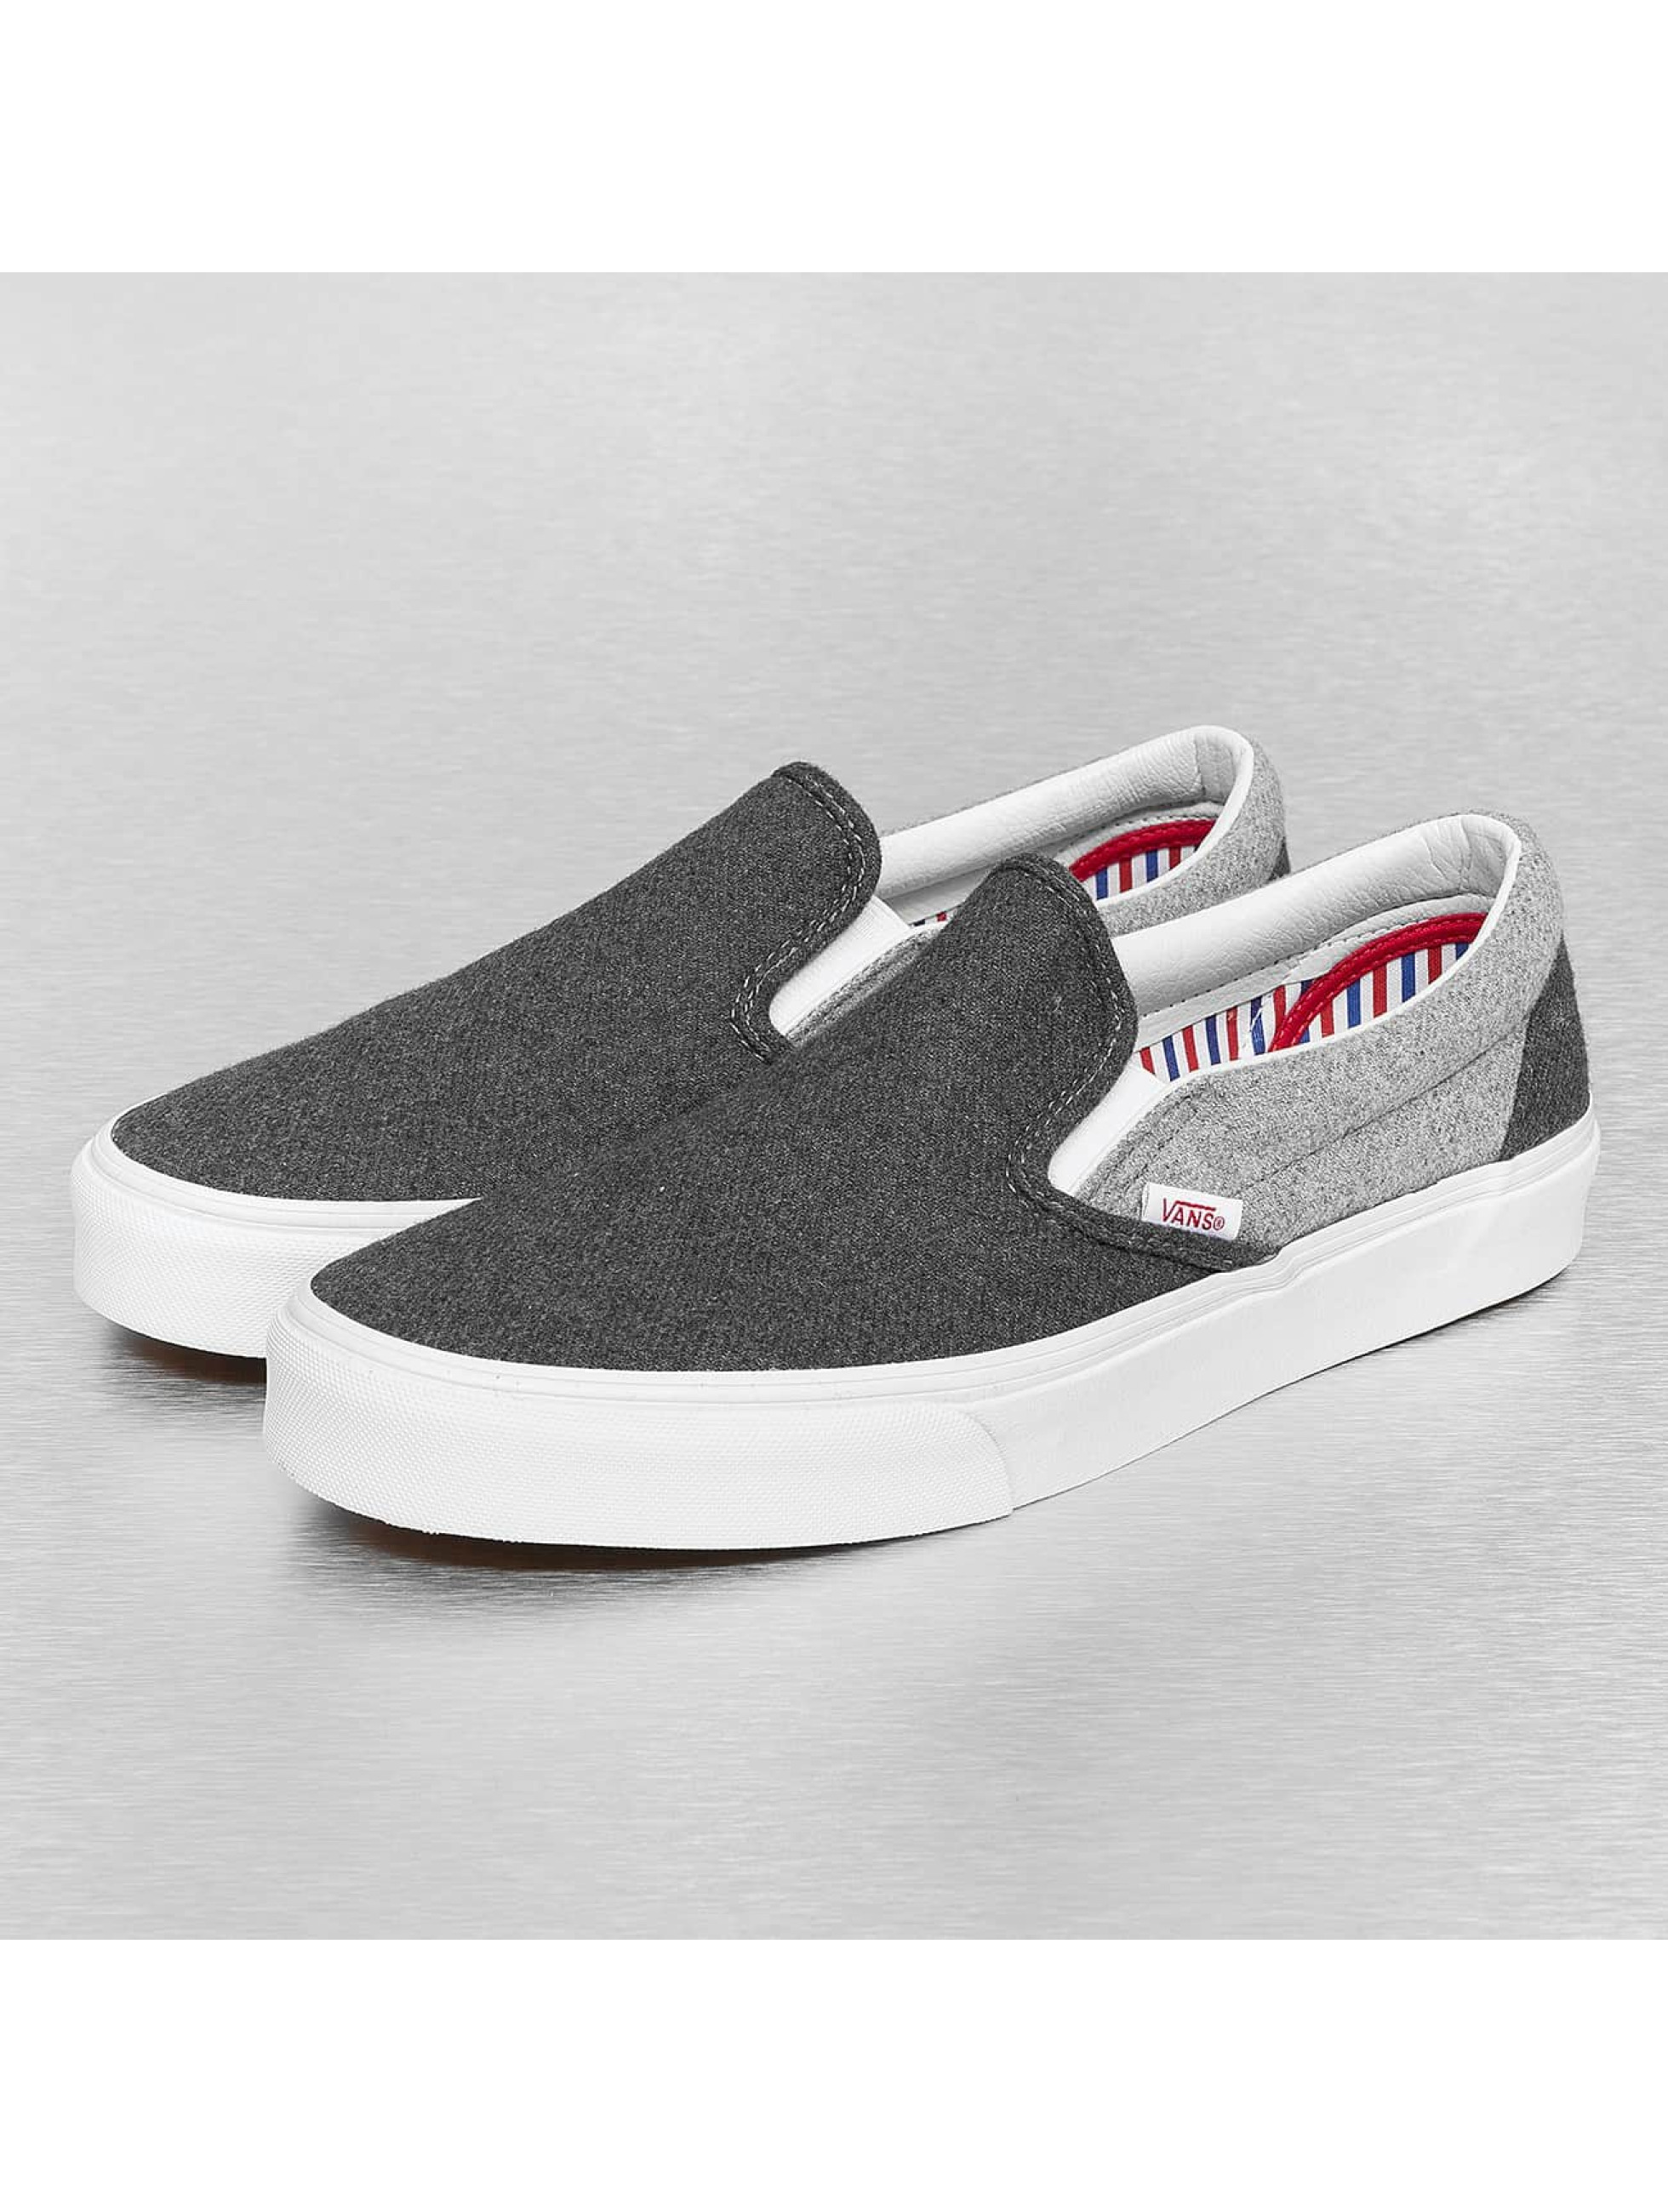 vans herren sneaker classic slip on ebay. Black Bedroom Furniture Sets. Home Design Ideas